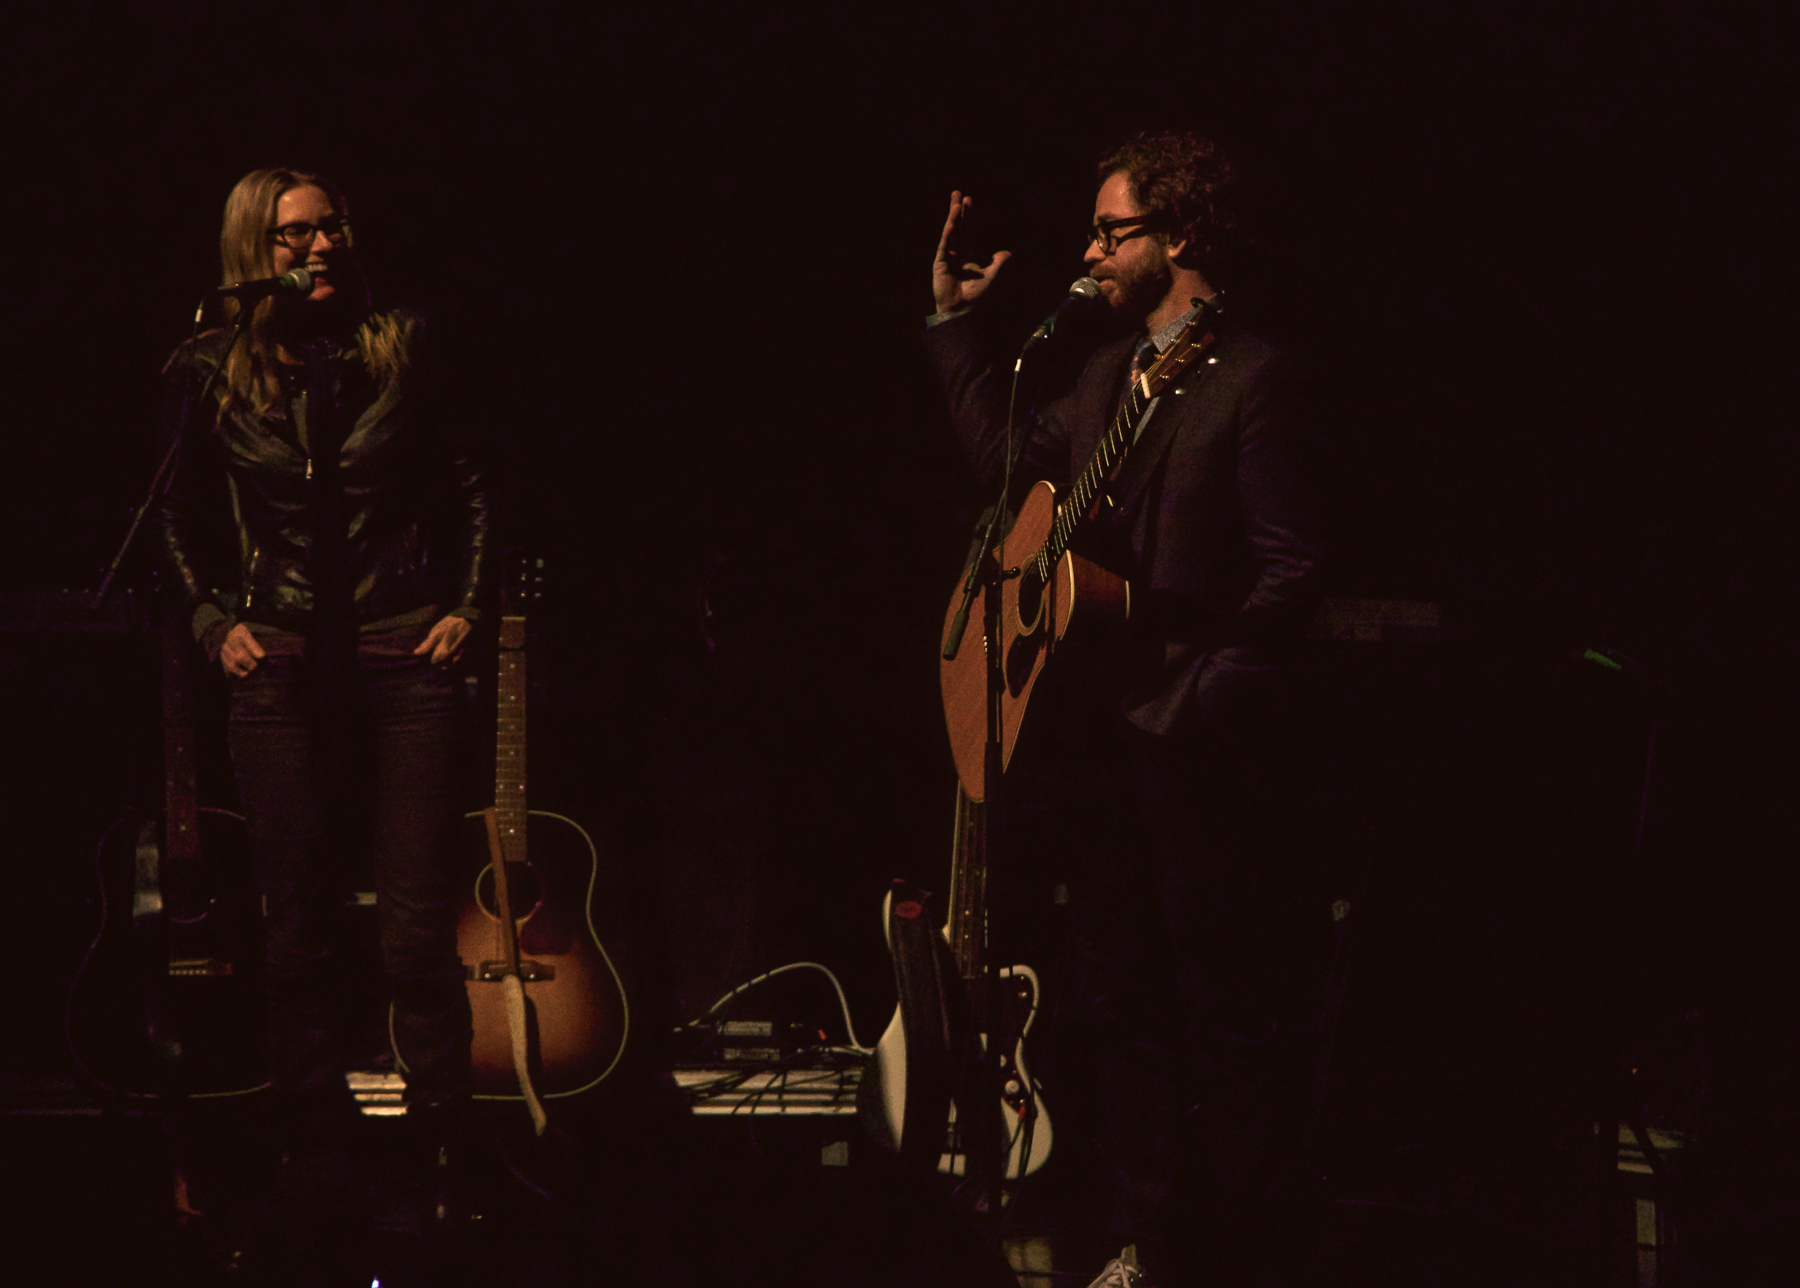 jonathan coulton 13 lior phillips Live Review: Aimee Mann at Chicago's Park West (4/29)